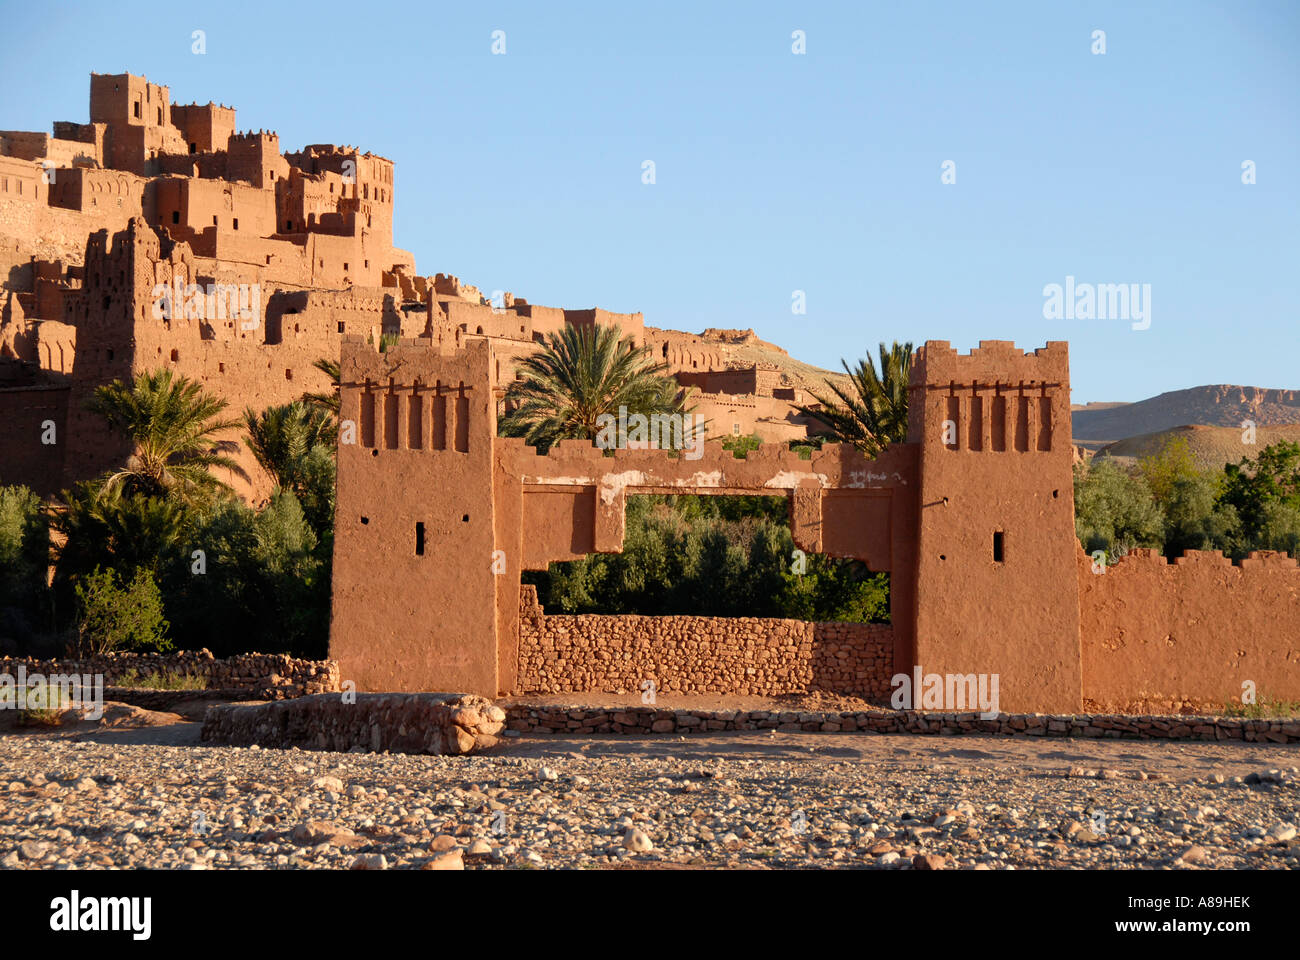 Gate traditional Berber architecture Kasbah Ait Benhaddou Morocco Stock Photo